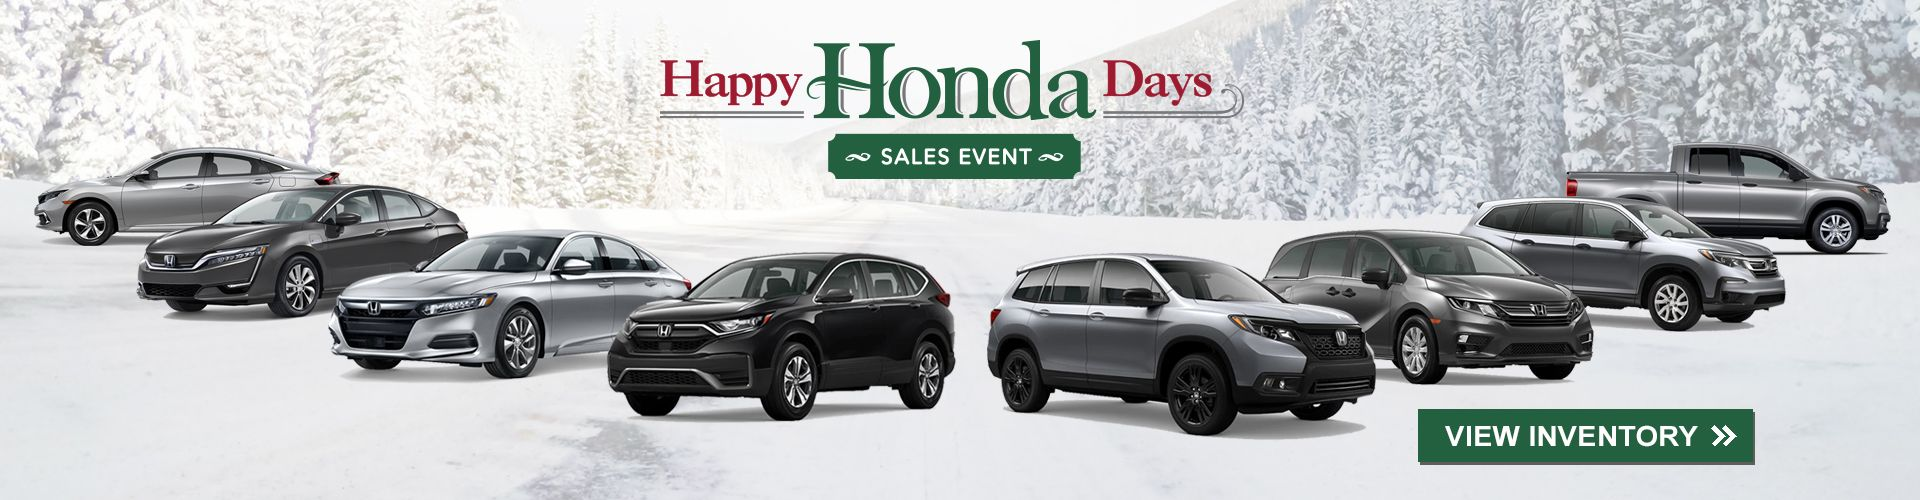 Don't miss the Happy Honda Days Sales Event near Macomb IL